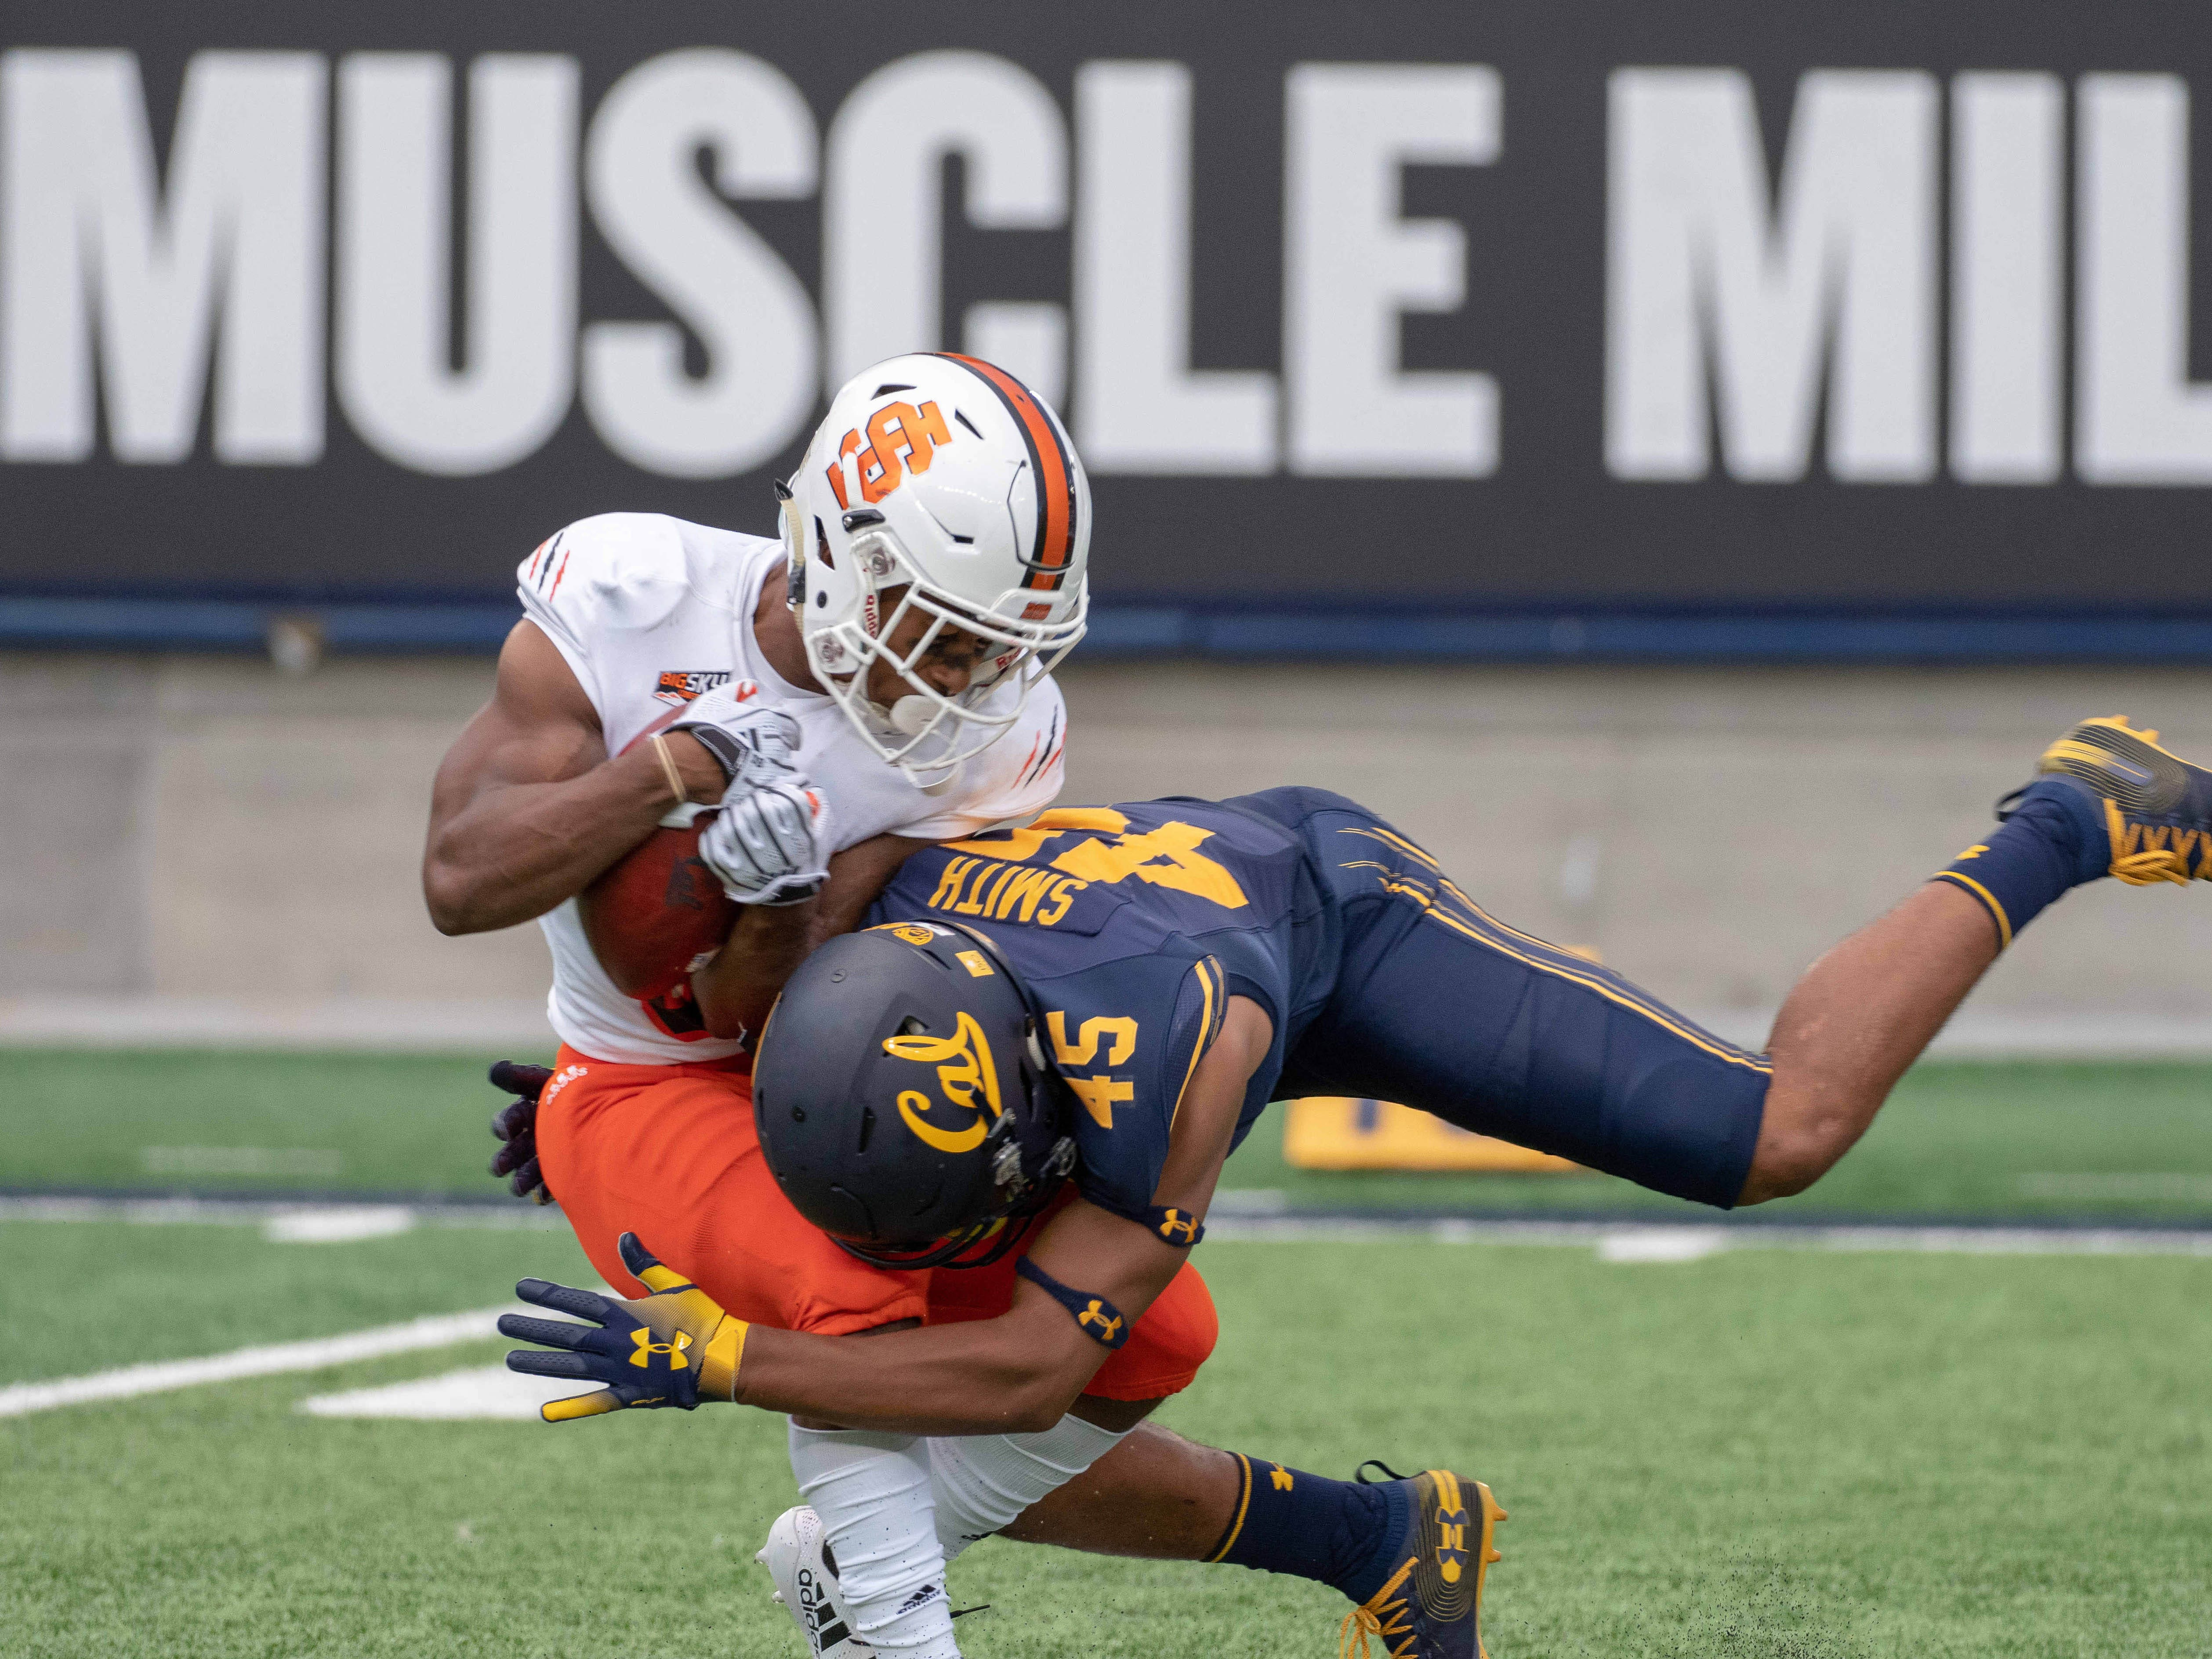 Idaho State Bengals defensive back Christian McFarland (5) is tackled by California Golden Bears cornerback Branden Smith (45) during the fourth quarter at California Memorial Stadium.